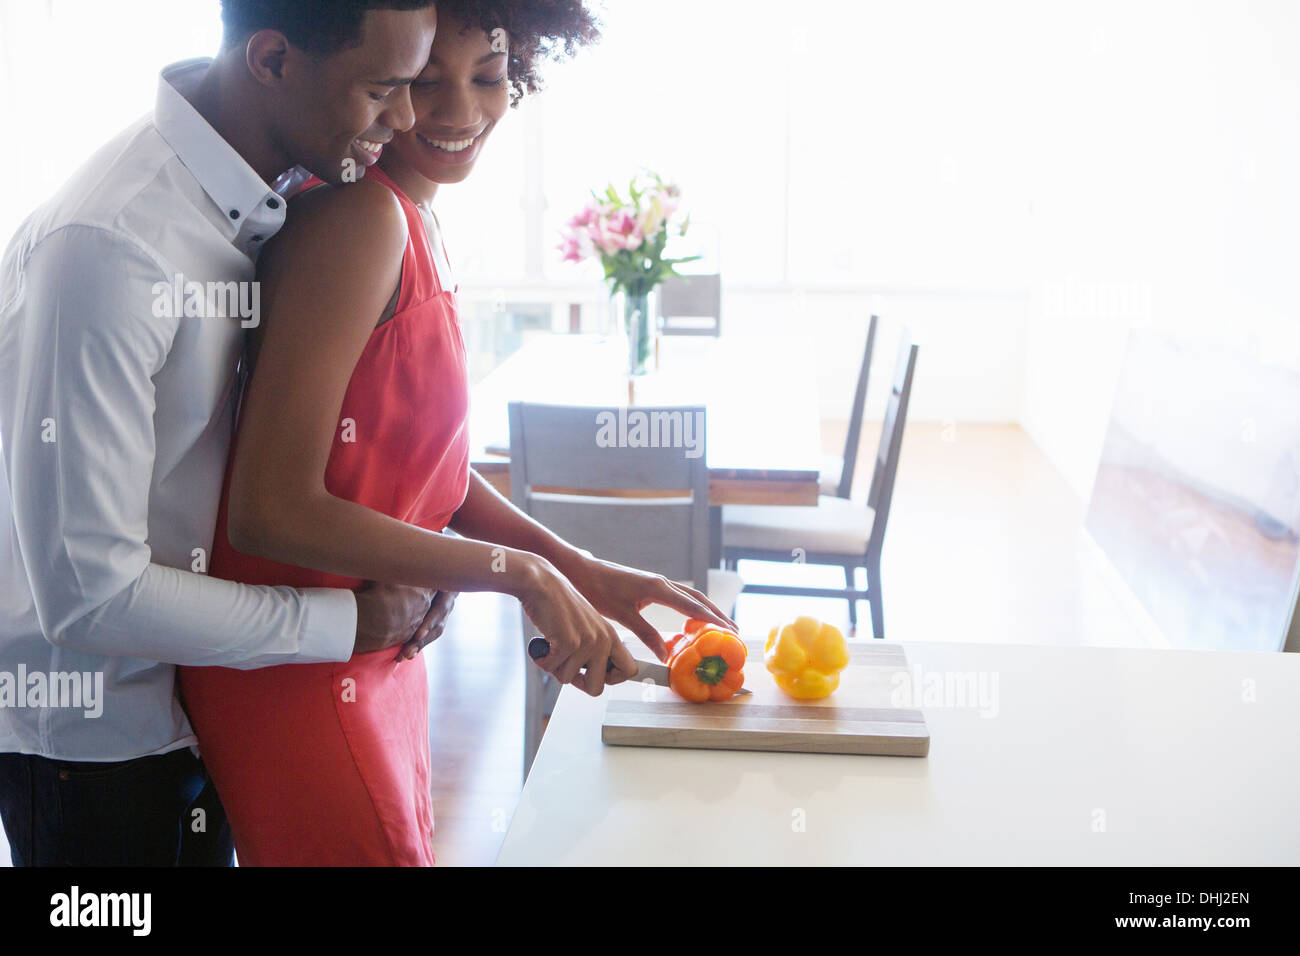 Young woman chopping peppers, man with arms around her - Stock Image